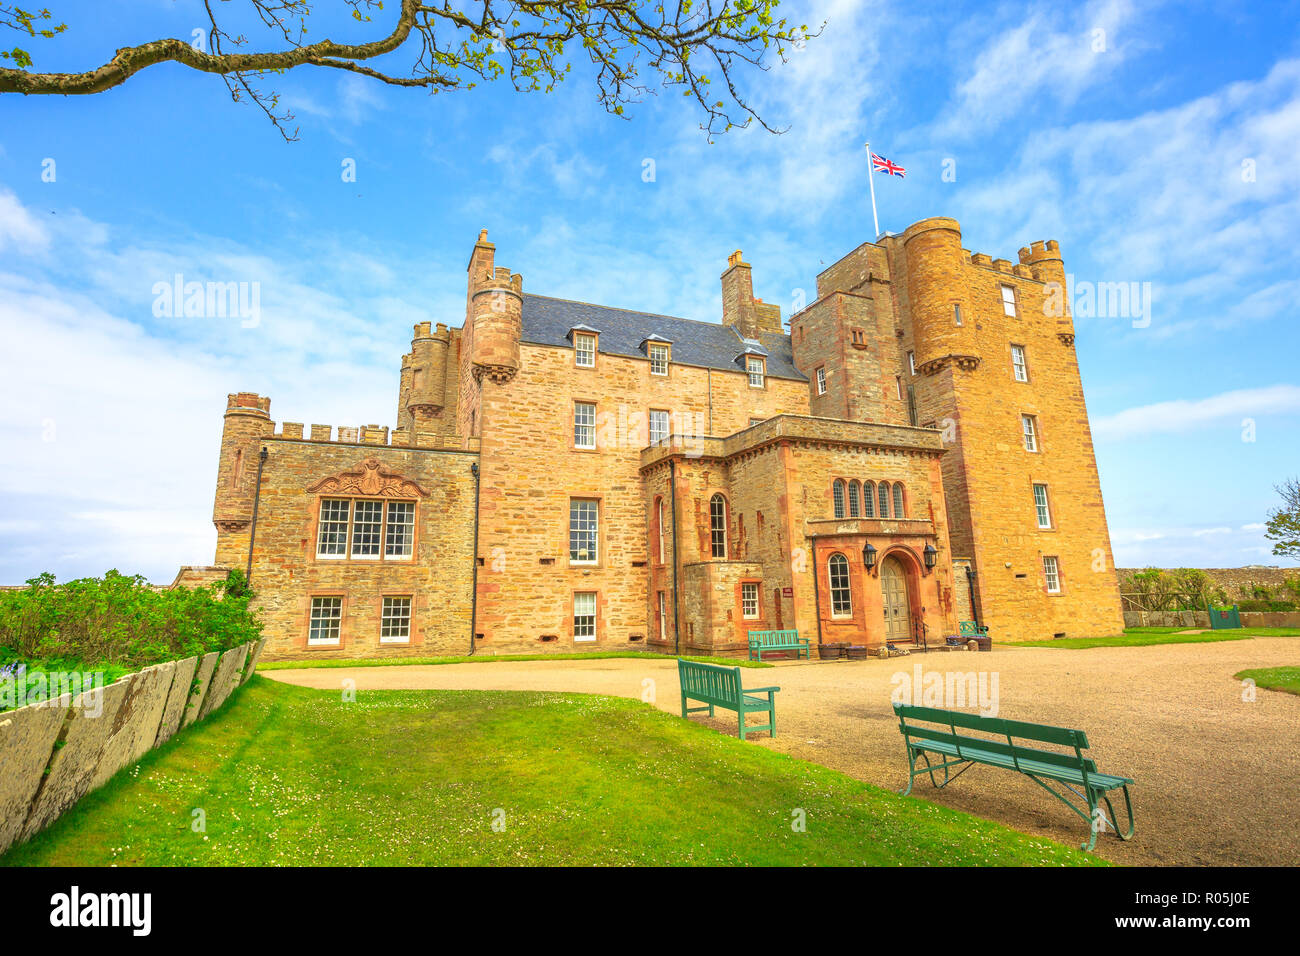 Castle of Mey of the Highland in Scotland, United Kingdom. Stock Photo